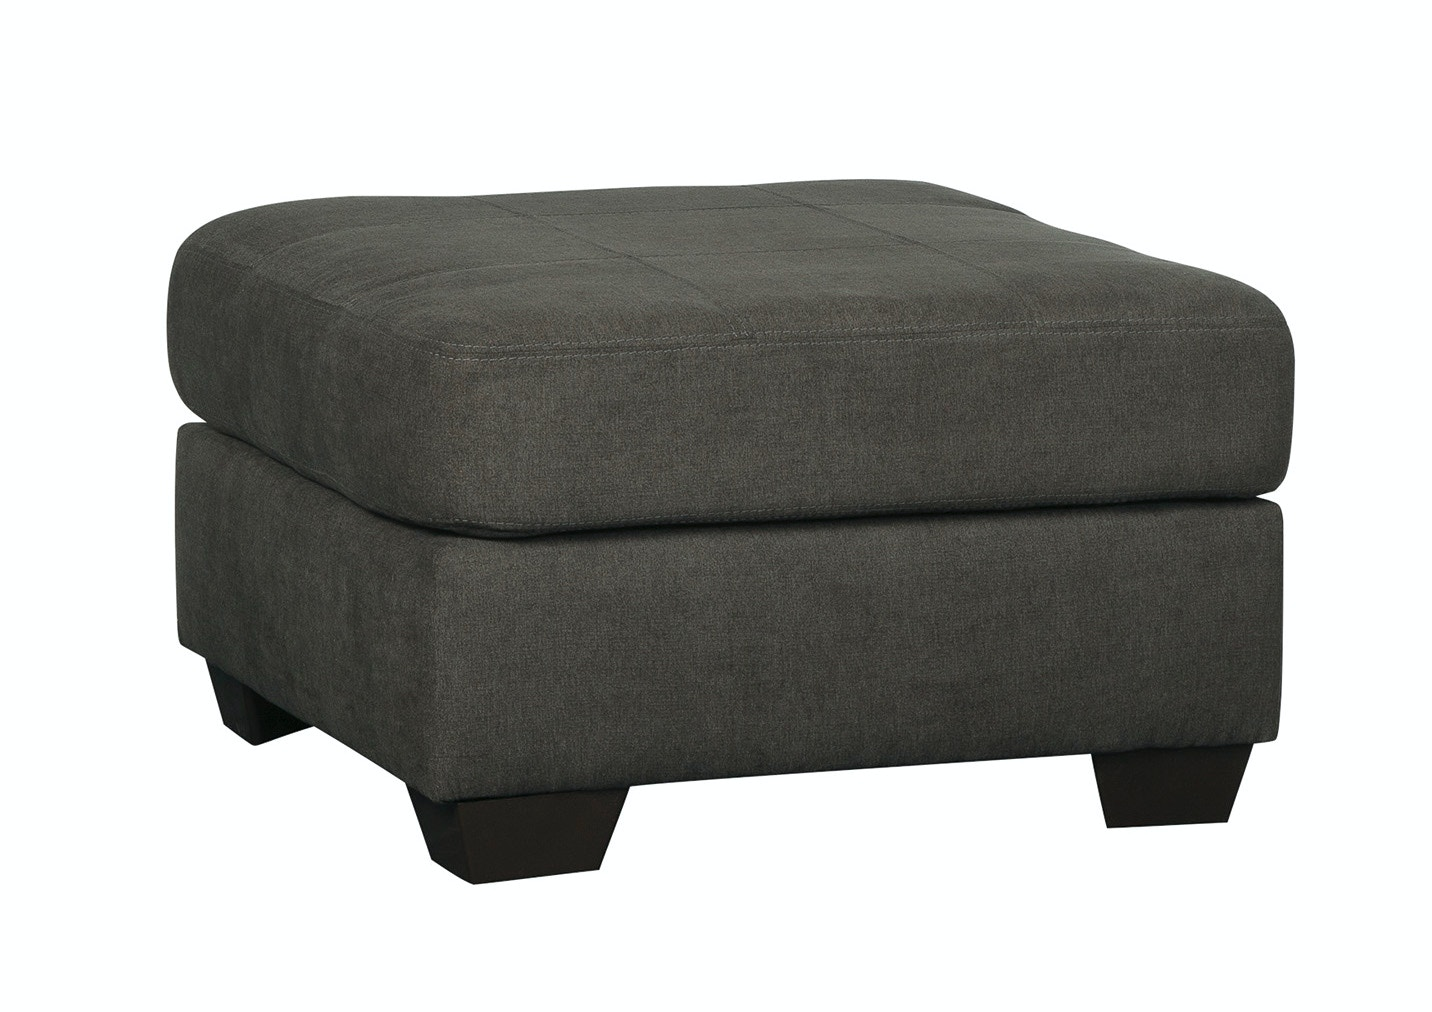 Signature Design by Ashley Living Room Delta City Oversized Ottoman - Steel 044458 - Furniture ...